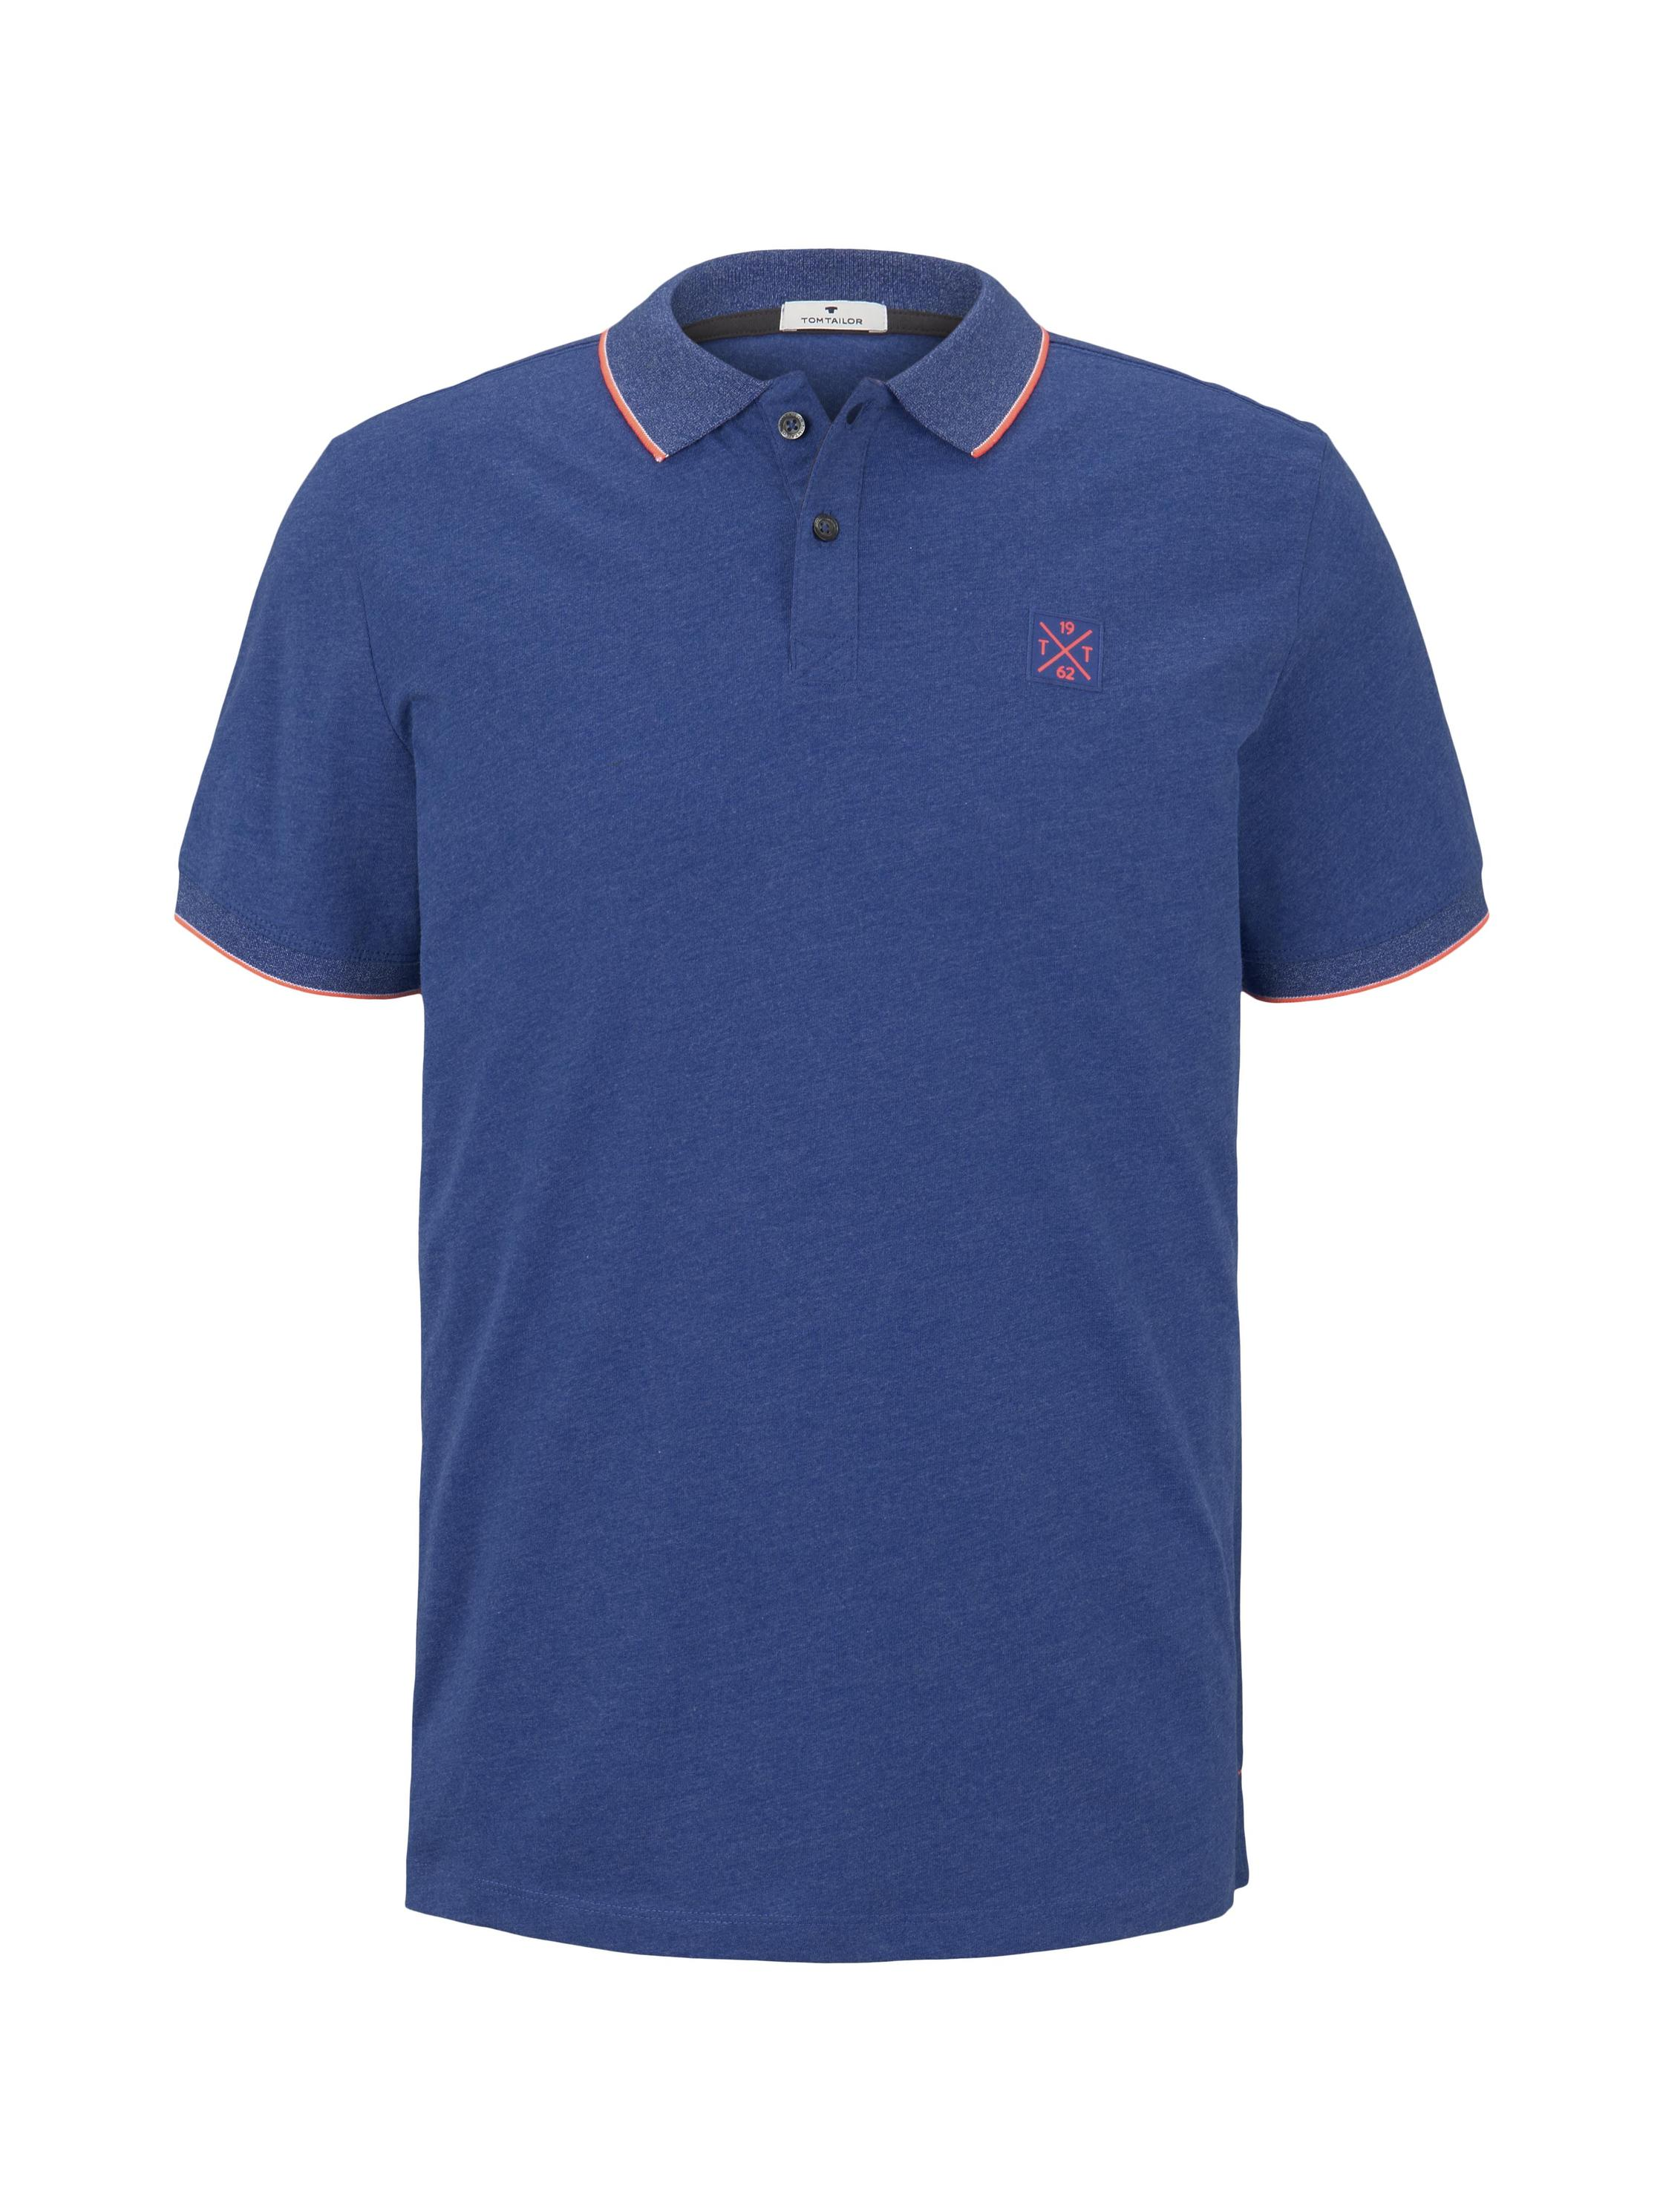 polo with tipping, royal blue white melange